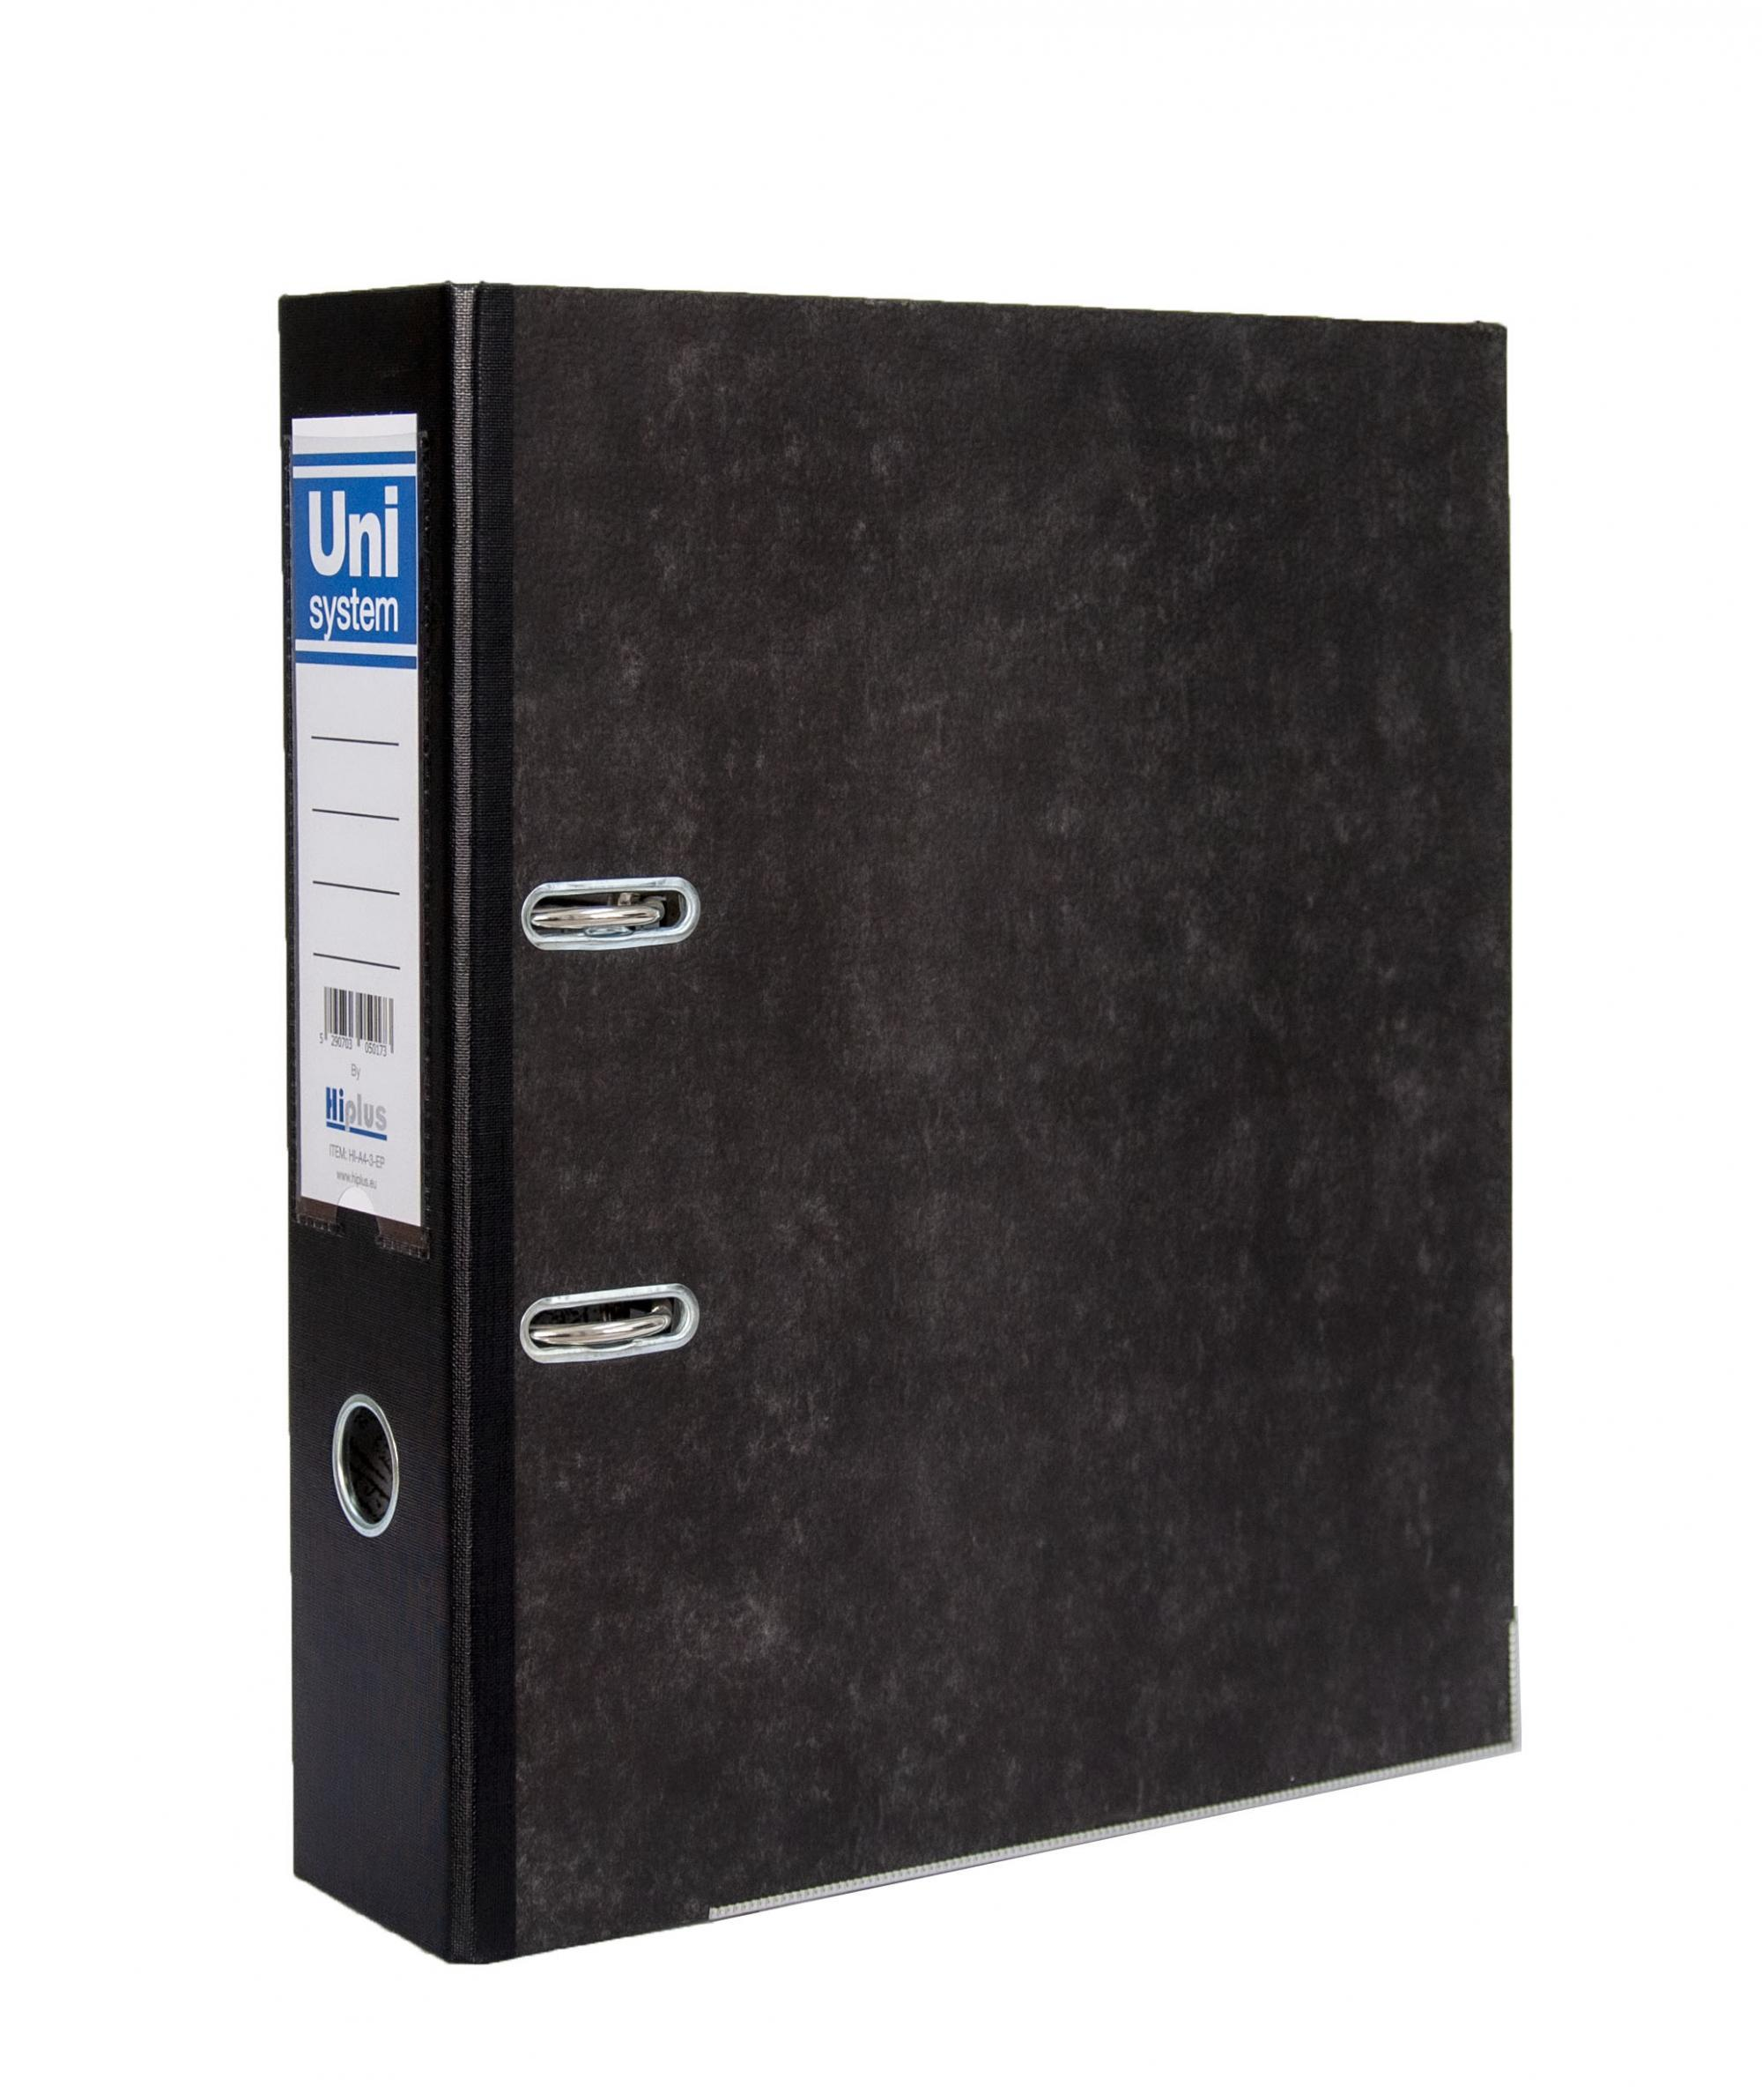 "HI-PLUS FCP LEVER ARCH FILE - 2"" SPINE - EMBOSSED PAPER"